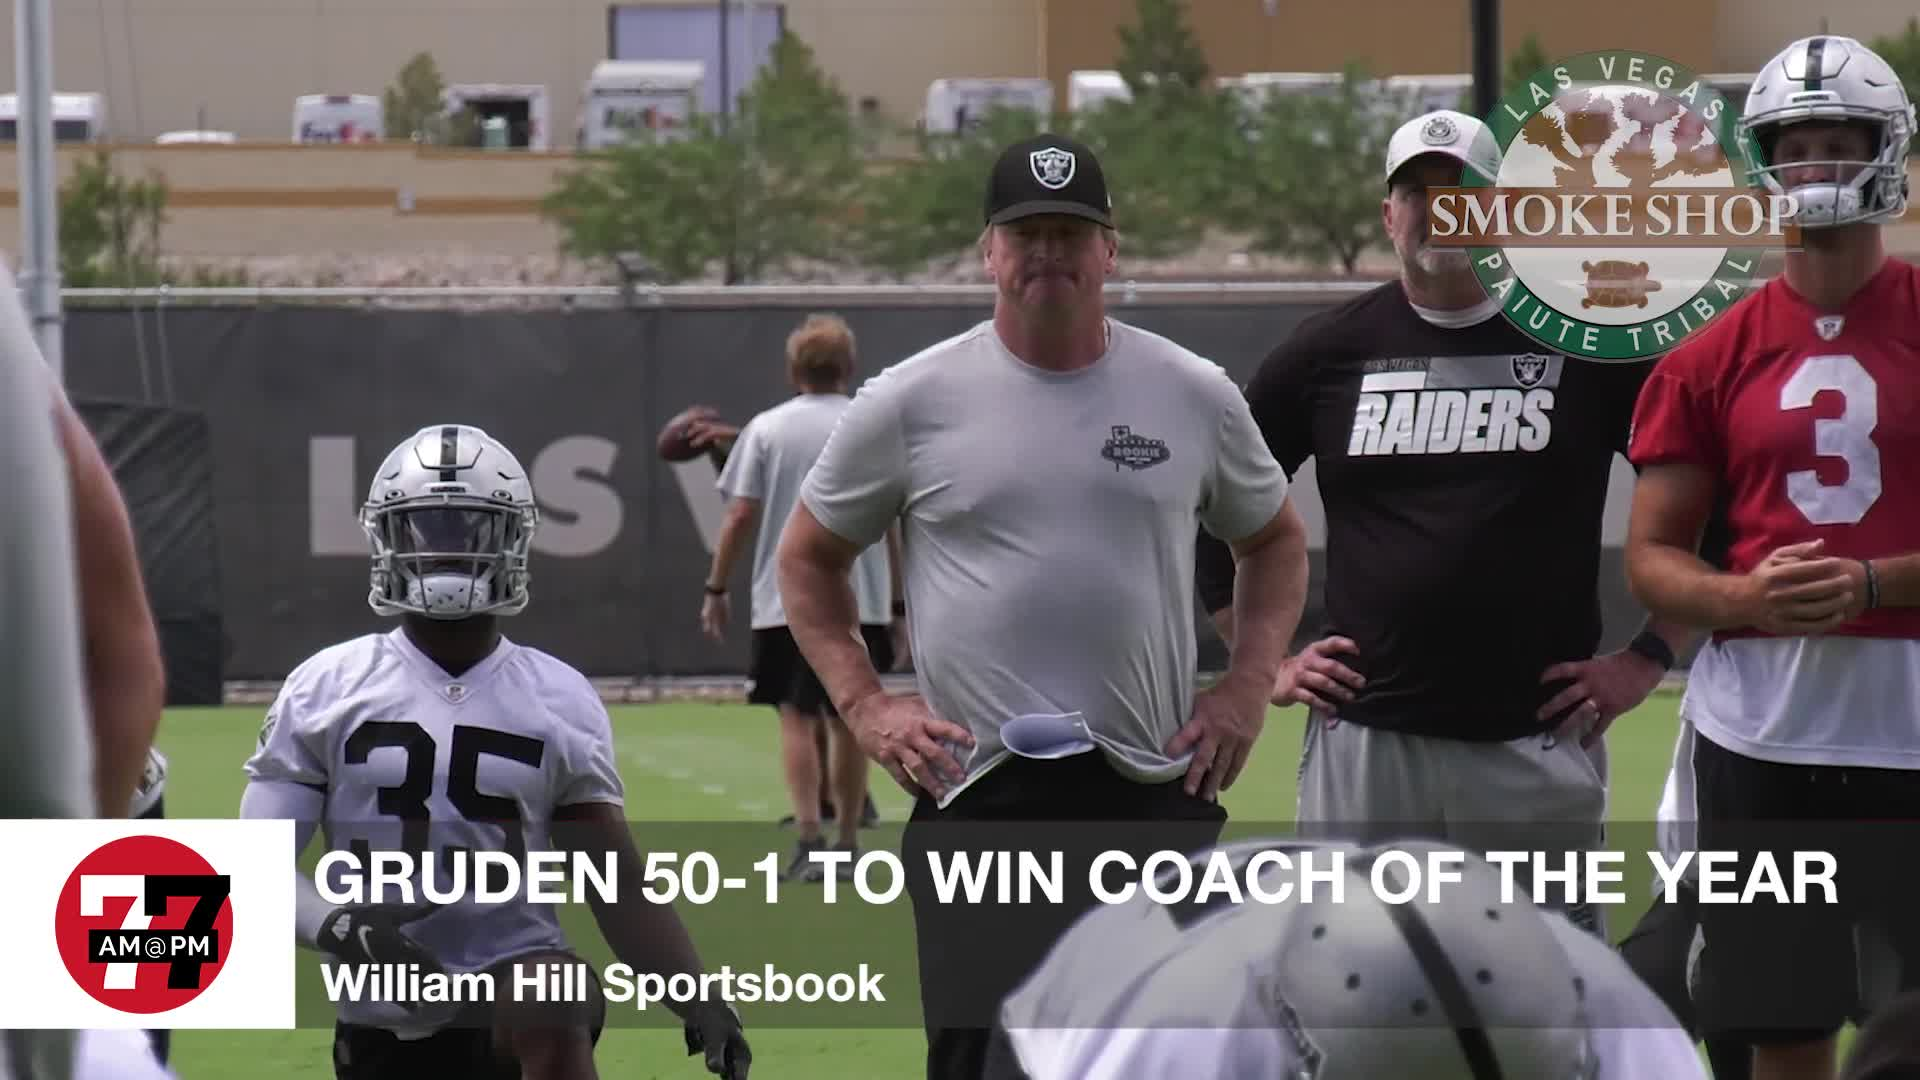 7@7PM Gruden 50-1 to Win Coach of the Year